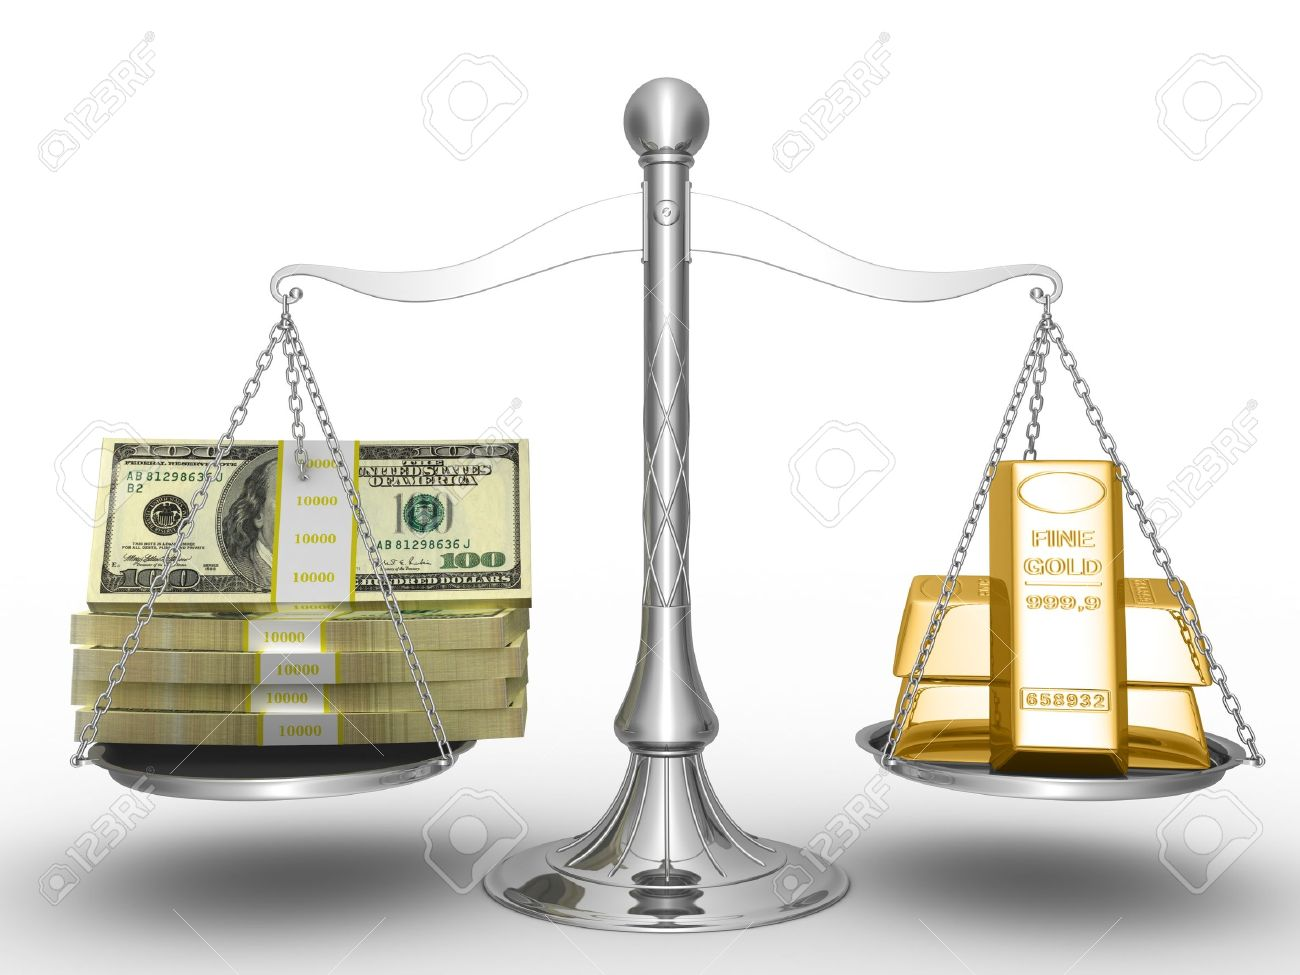 Balance between stack of money and stack of gold. Stock Photo - 8345283